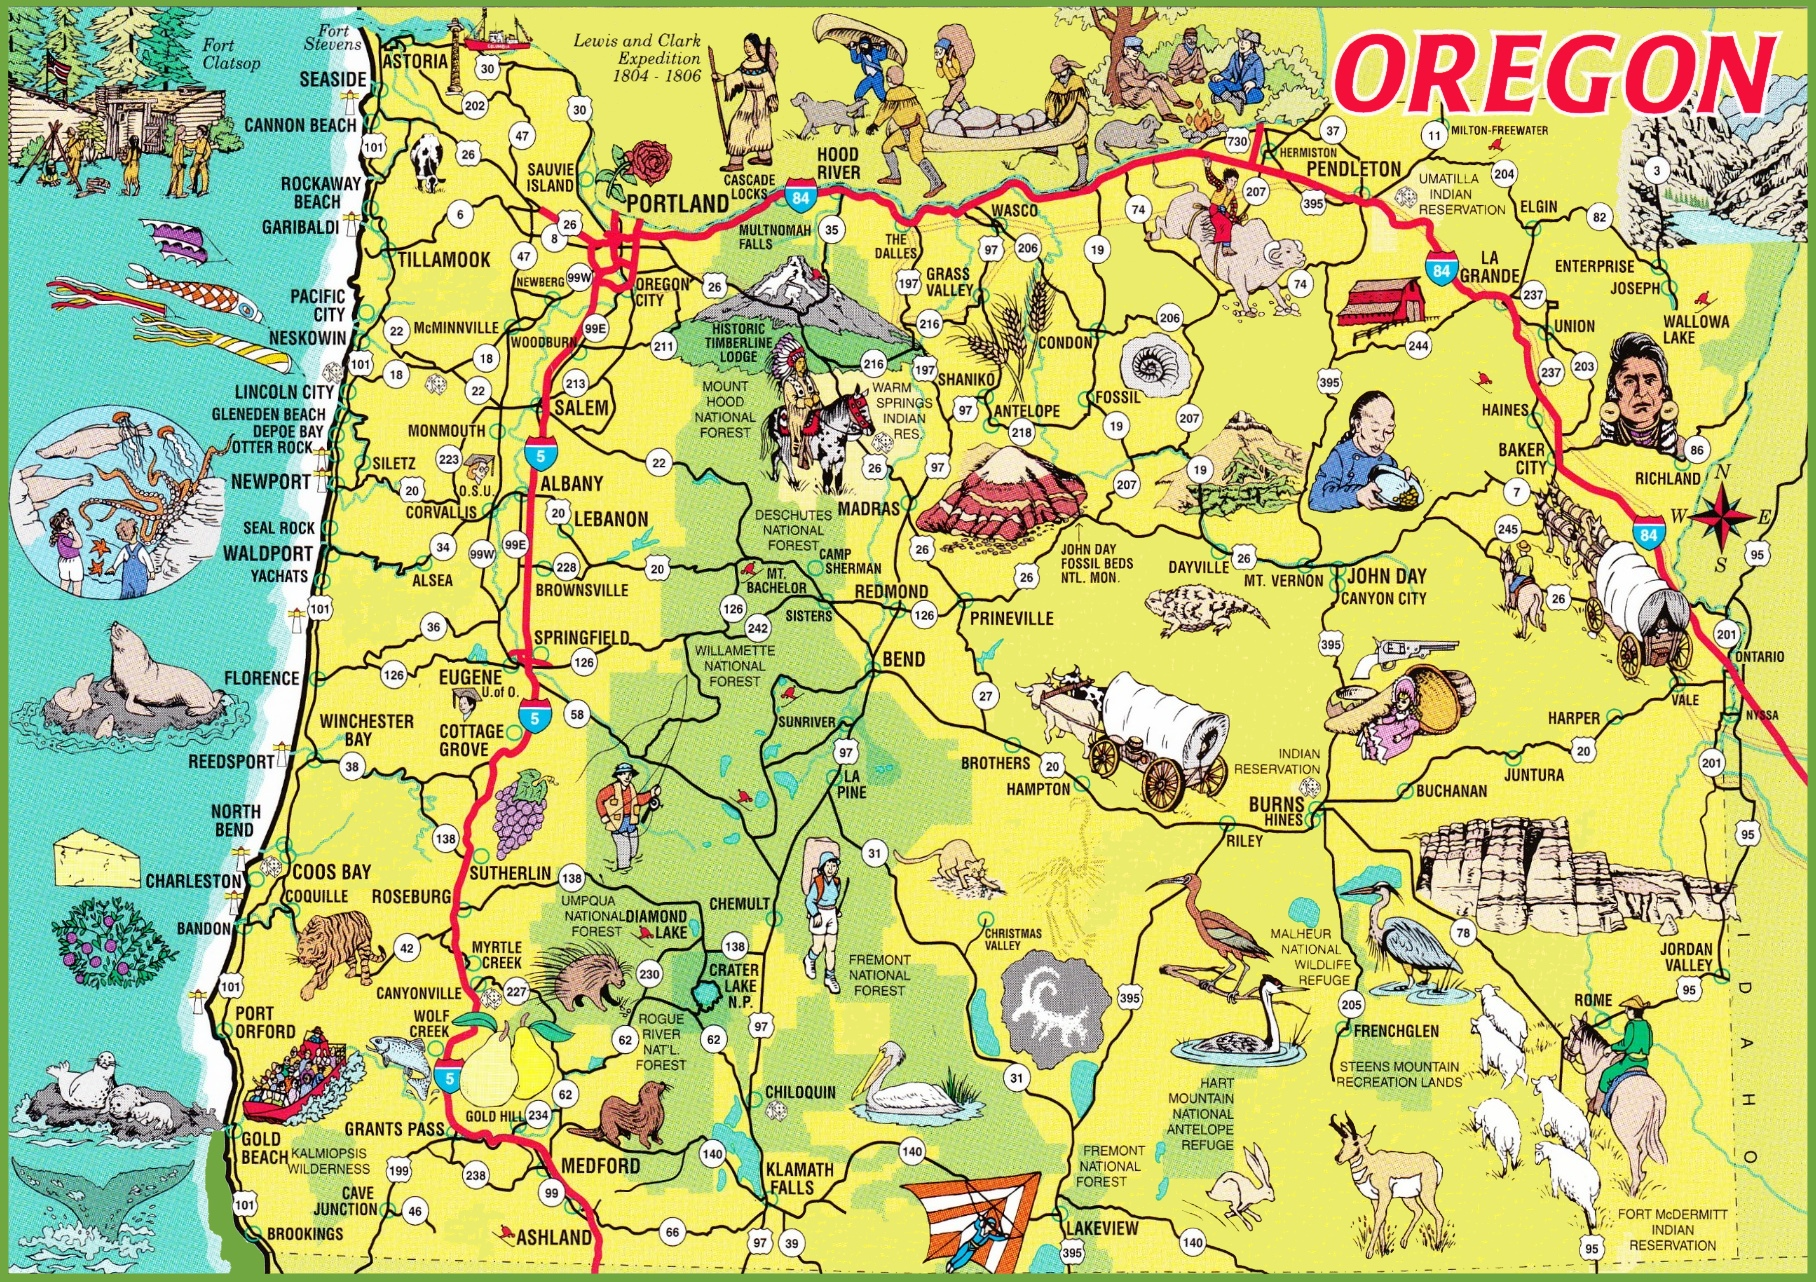 Oregon State Maps USA Maps Of Oregon OR - Oregon map us